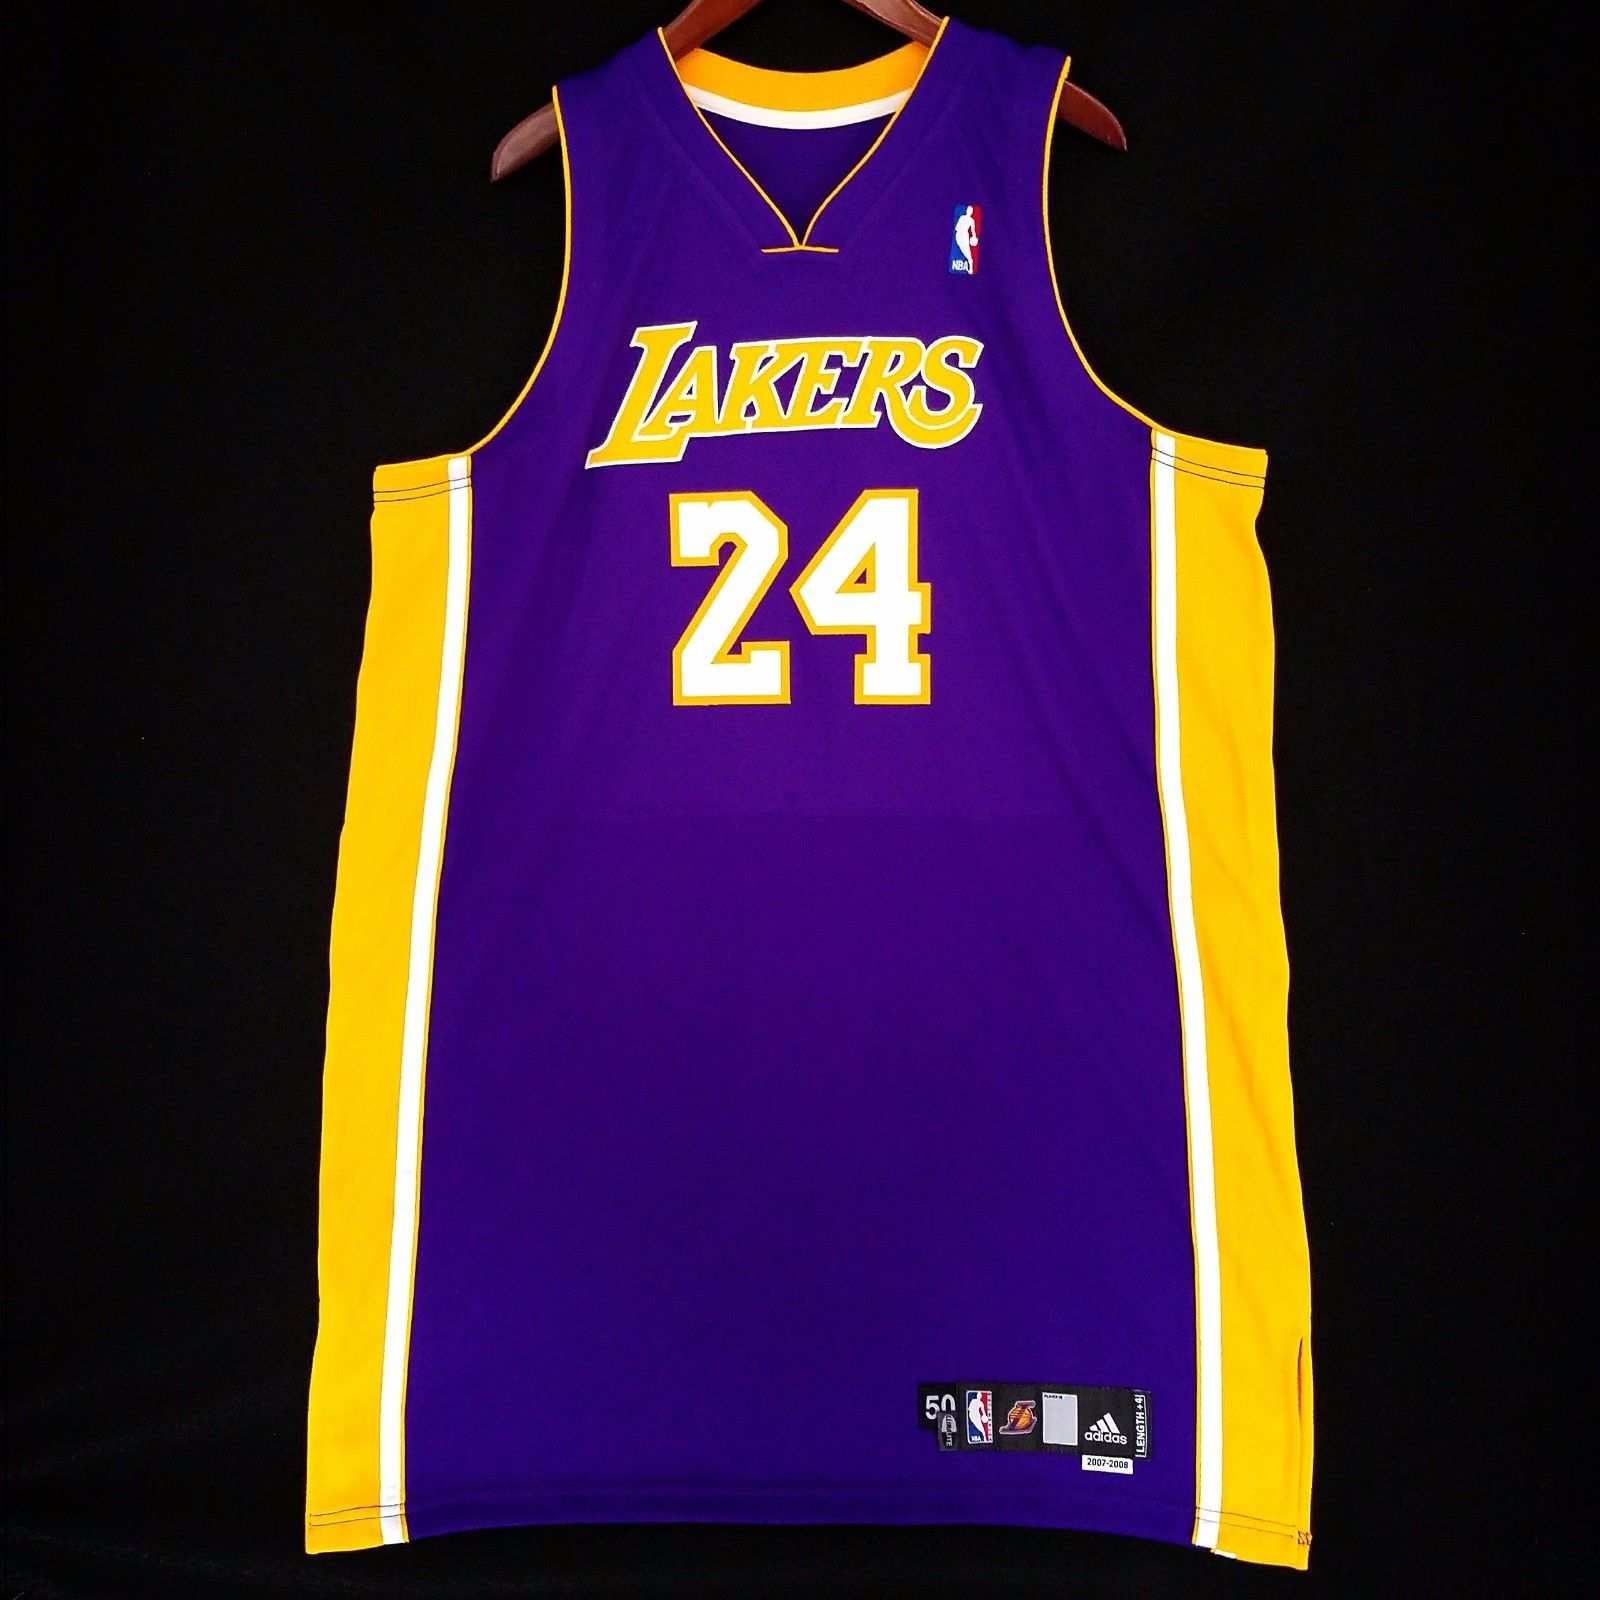 672d84a292c7 ... Bryant Los Angeles Lakers Adidas Authentic Pro Cut Jersey. Kobe ...